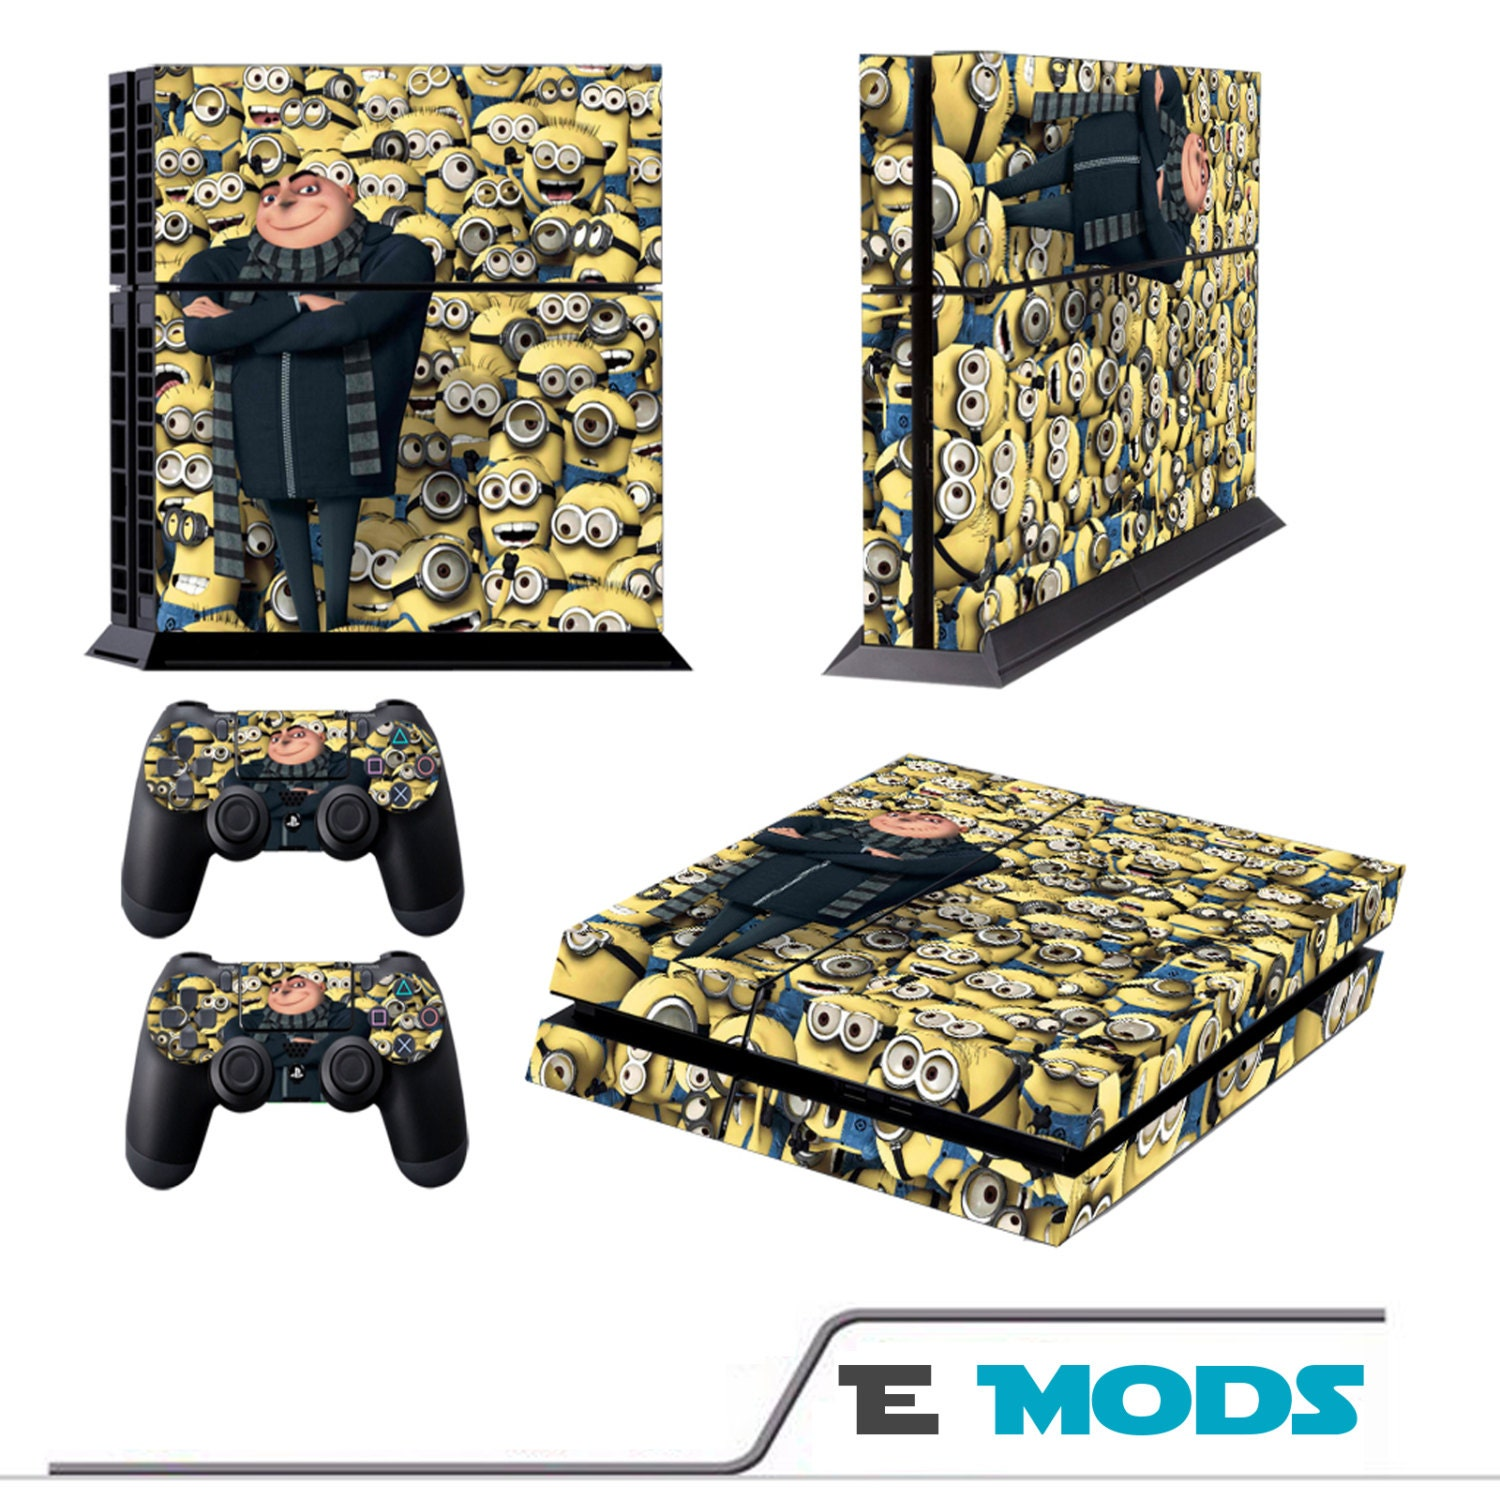 Despicable Me Minions Playstation 4 PS4 Console Skin Vinyl Graphic decal  2 controller stickers